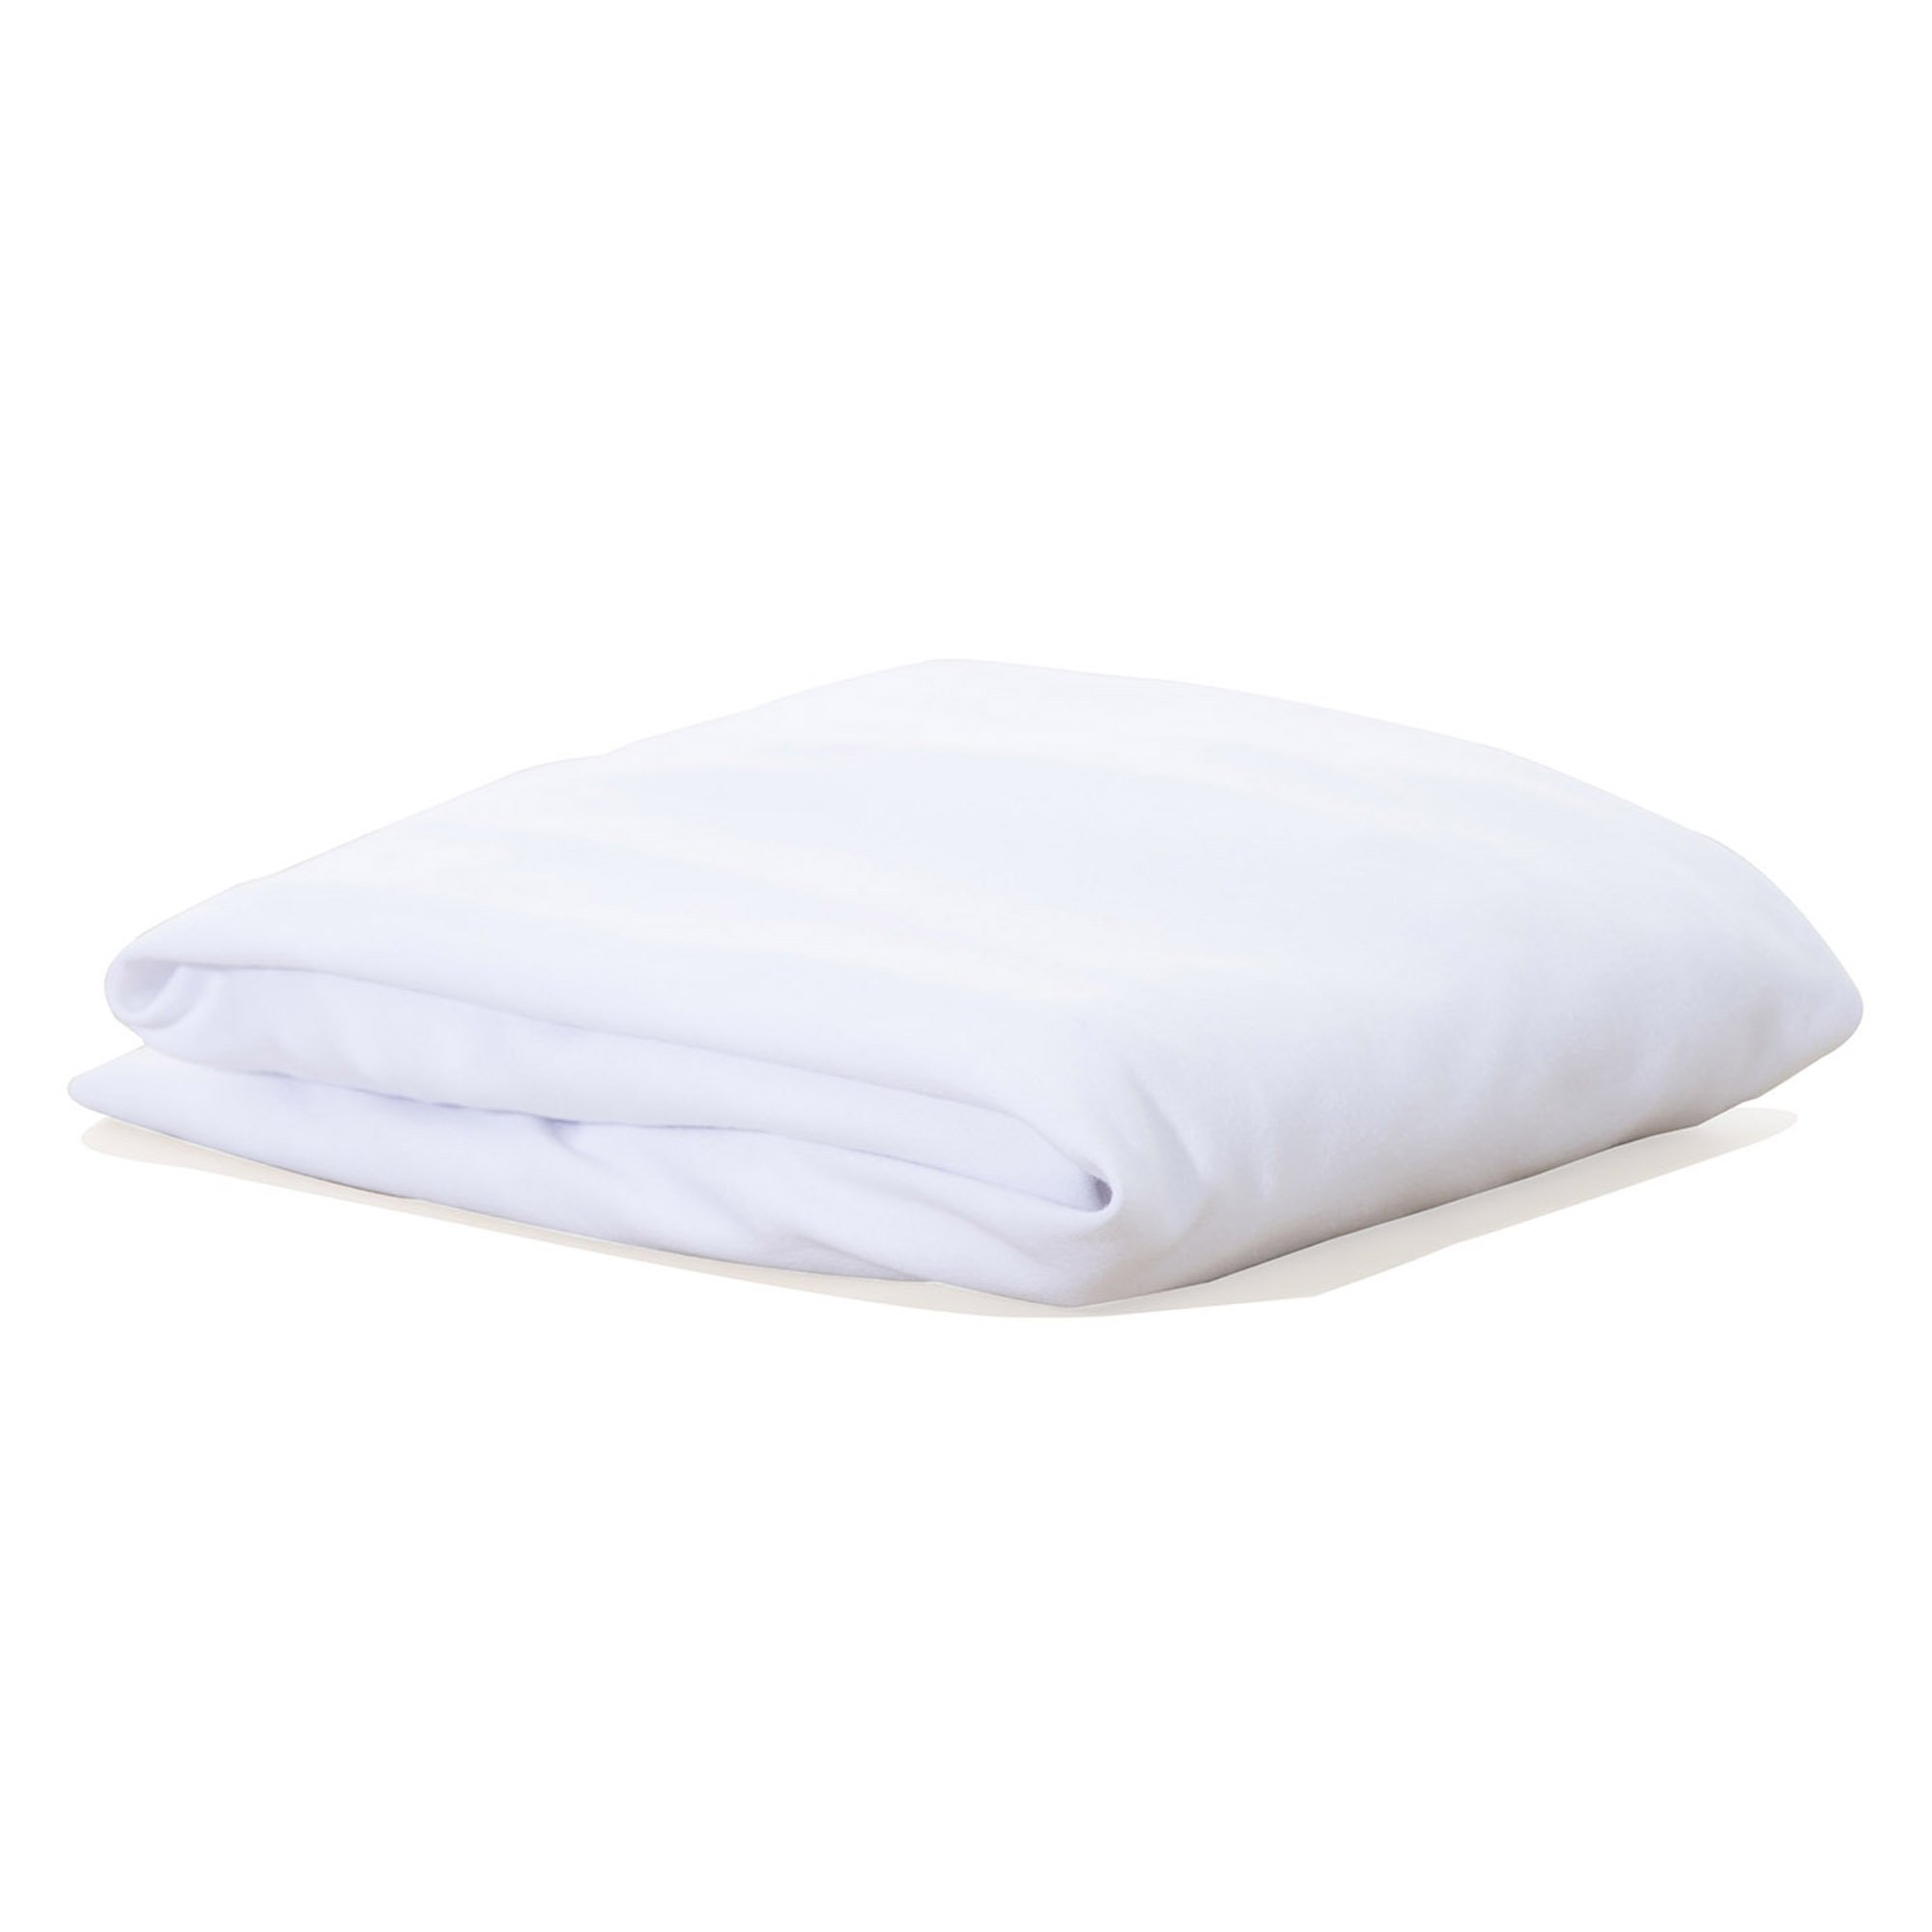 JOOVY Room2 Waterproof Fitted Sheet